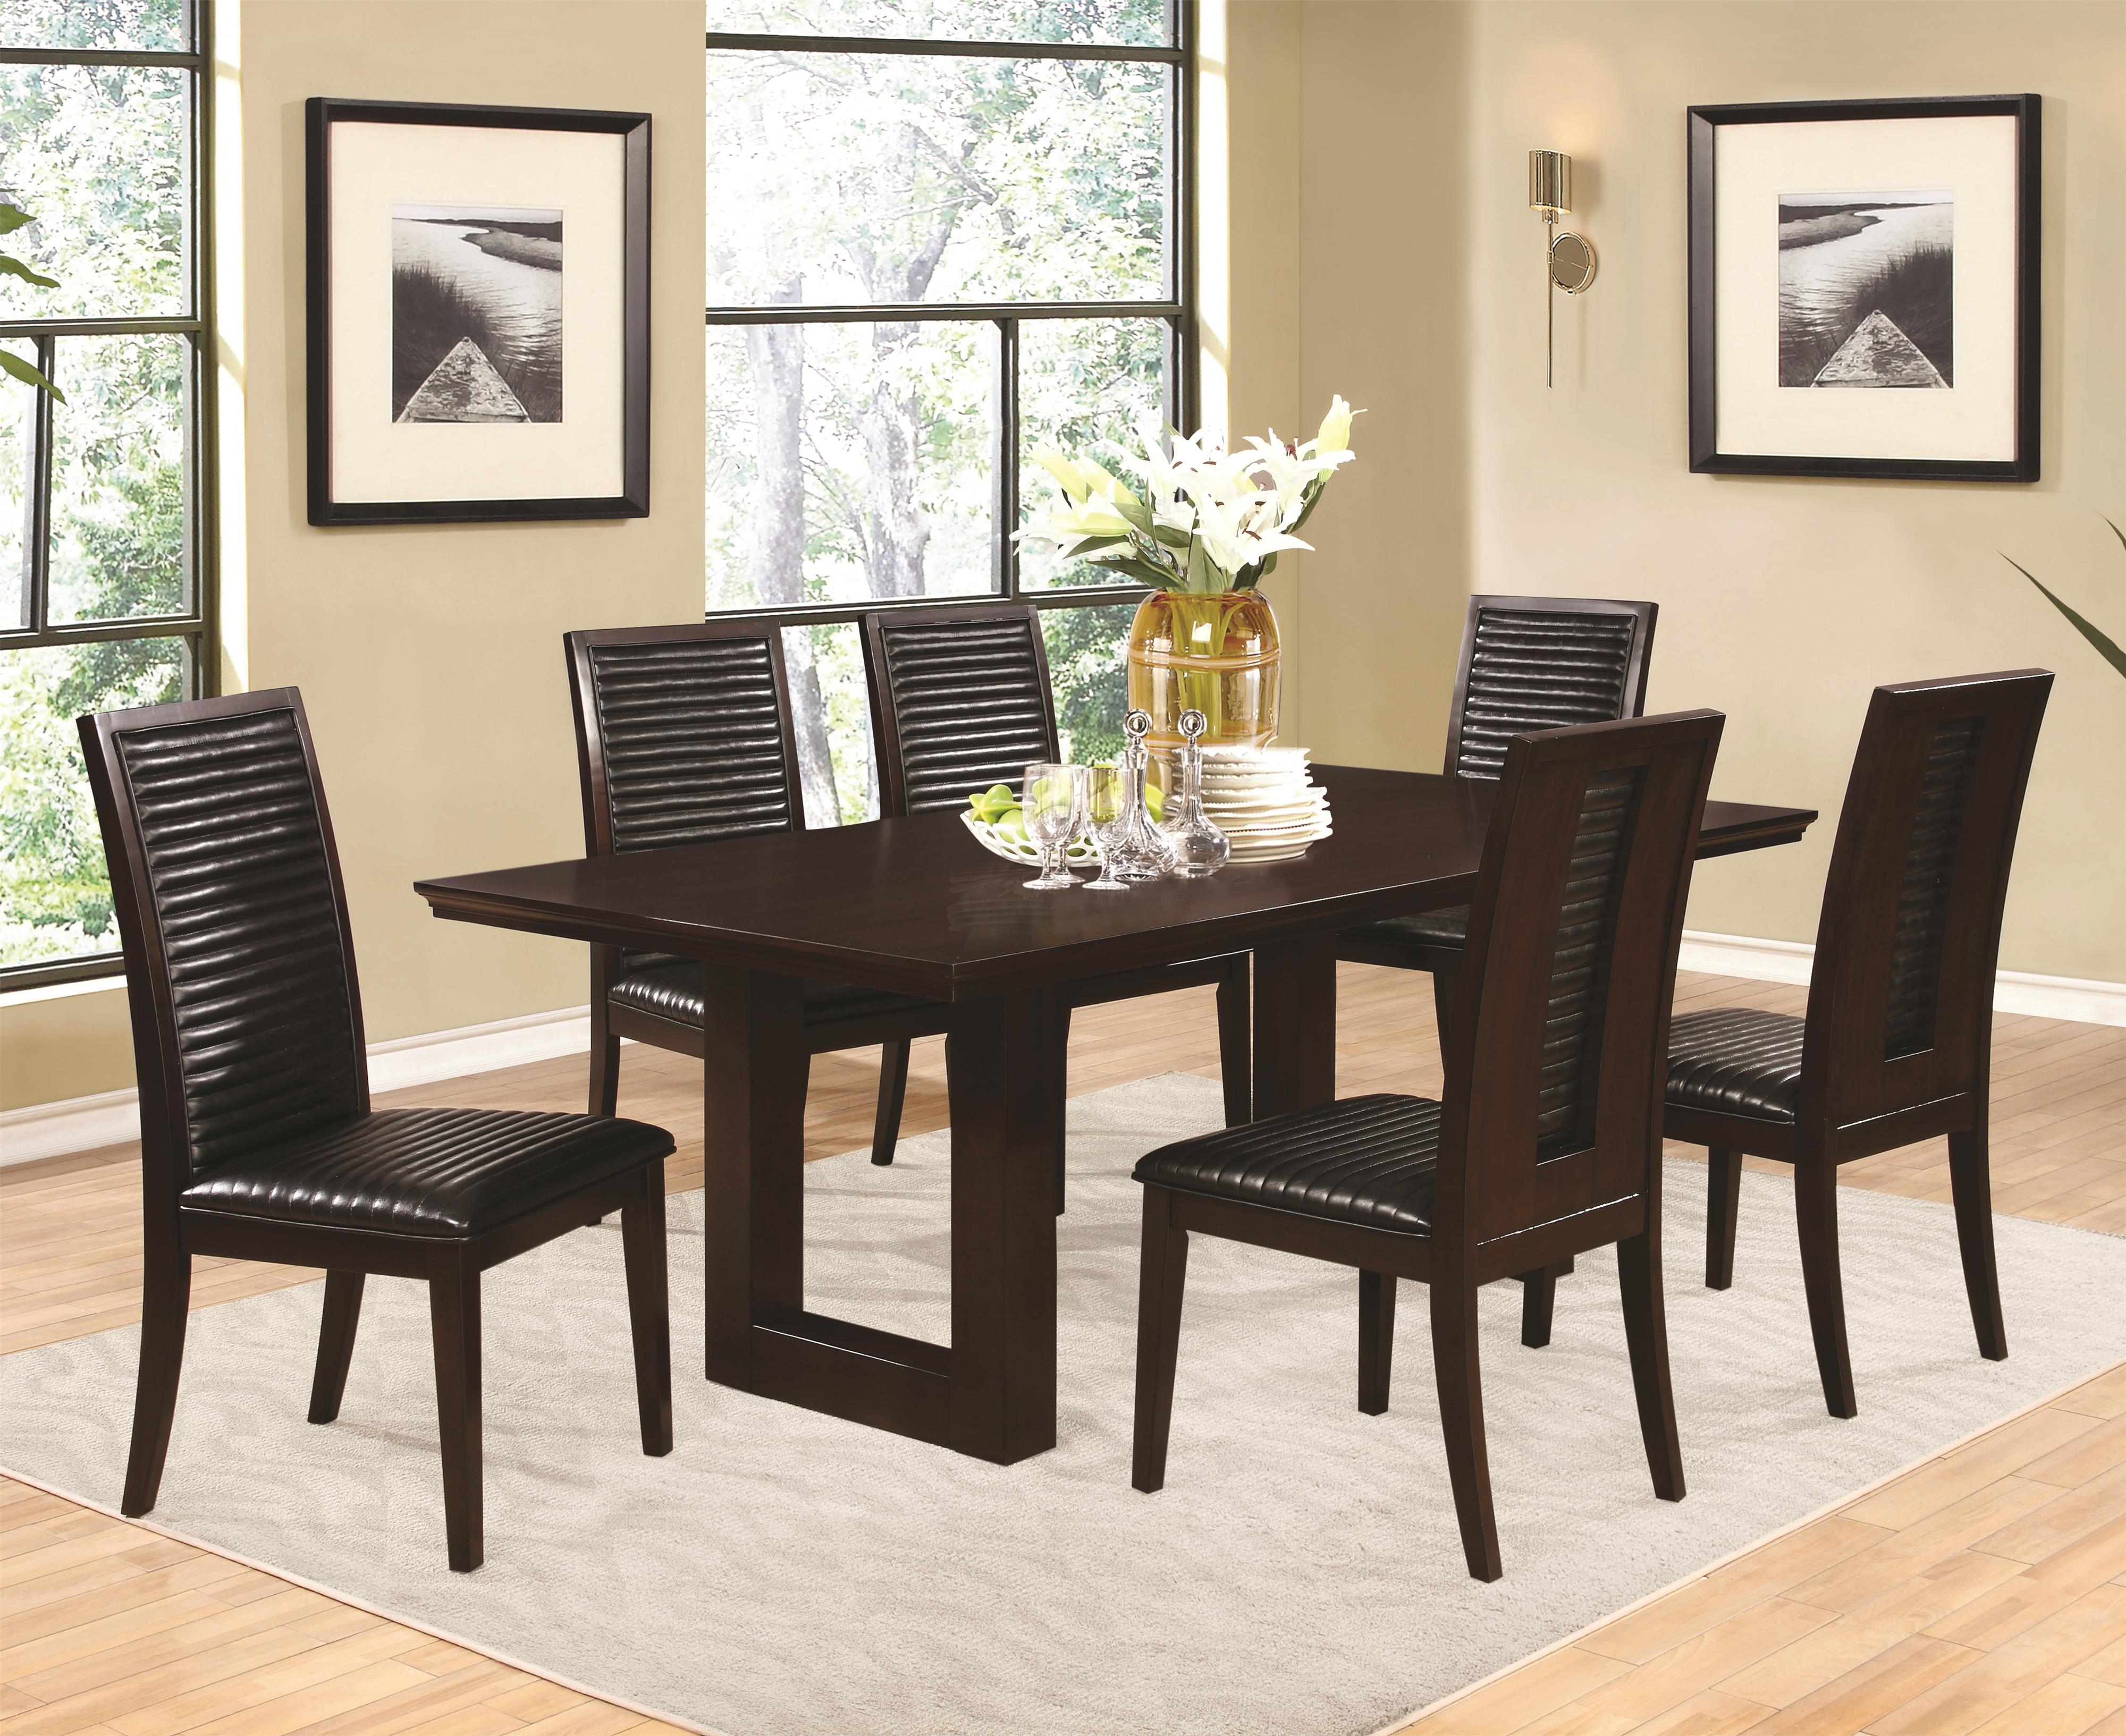 Chester 5 piece pedestal chair and side chairs set